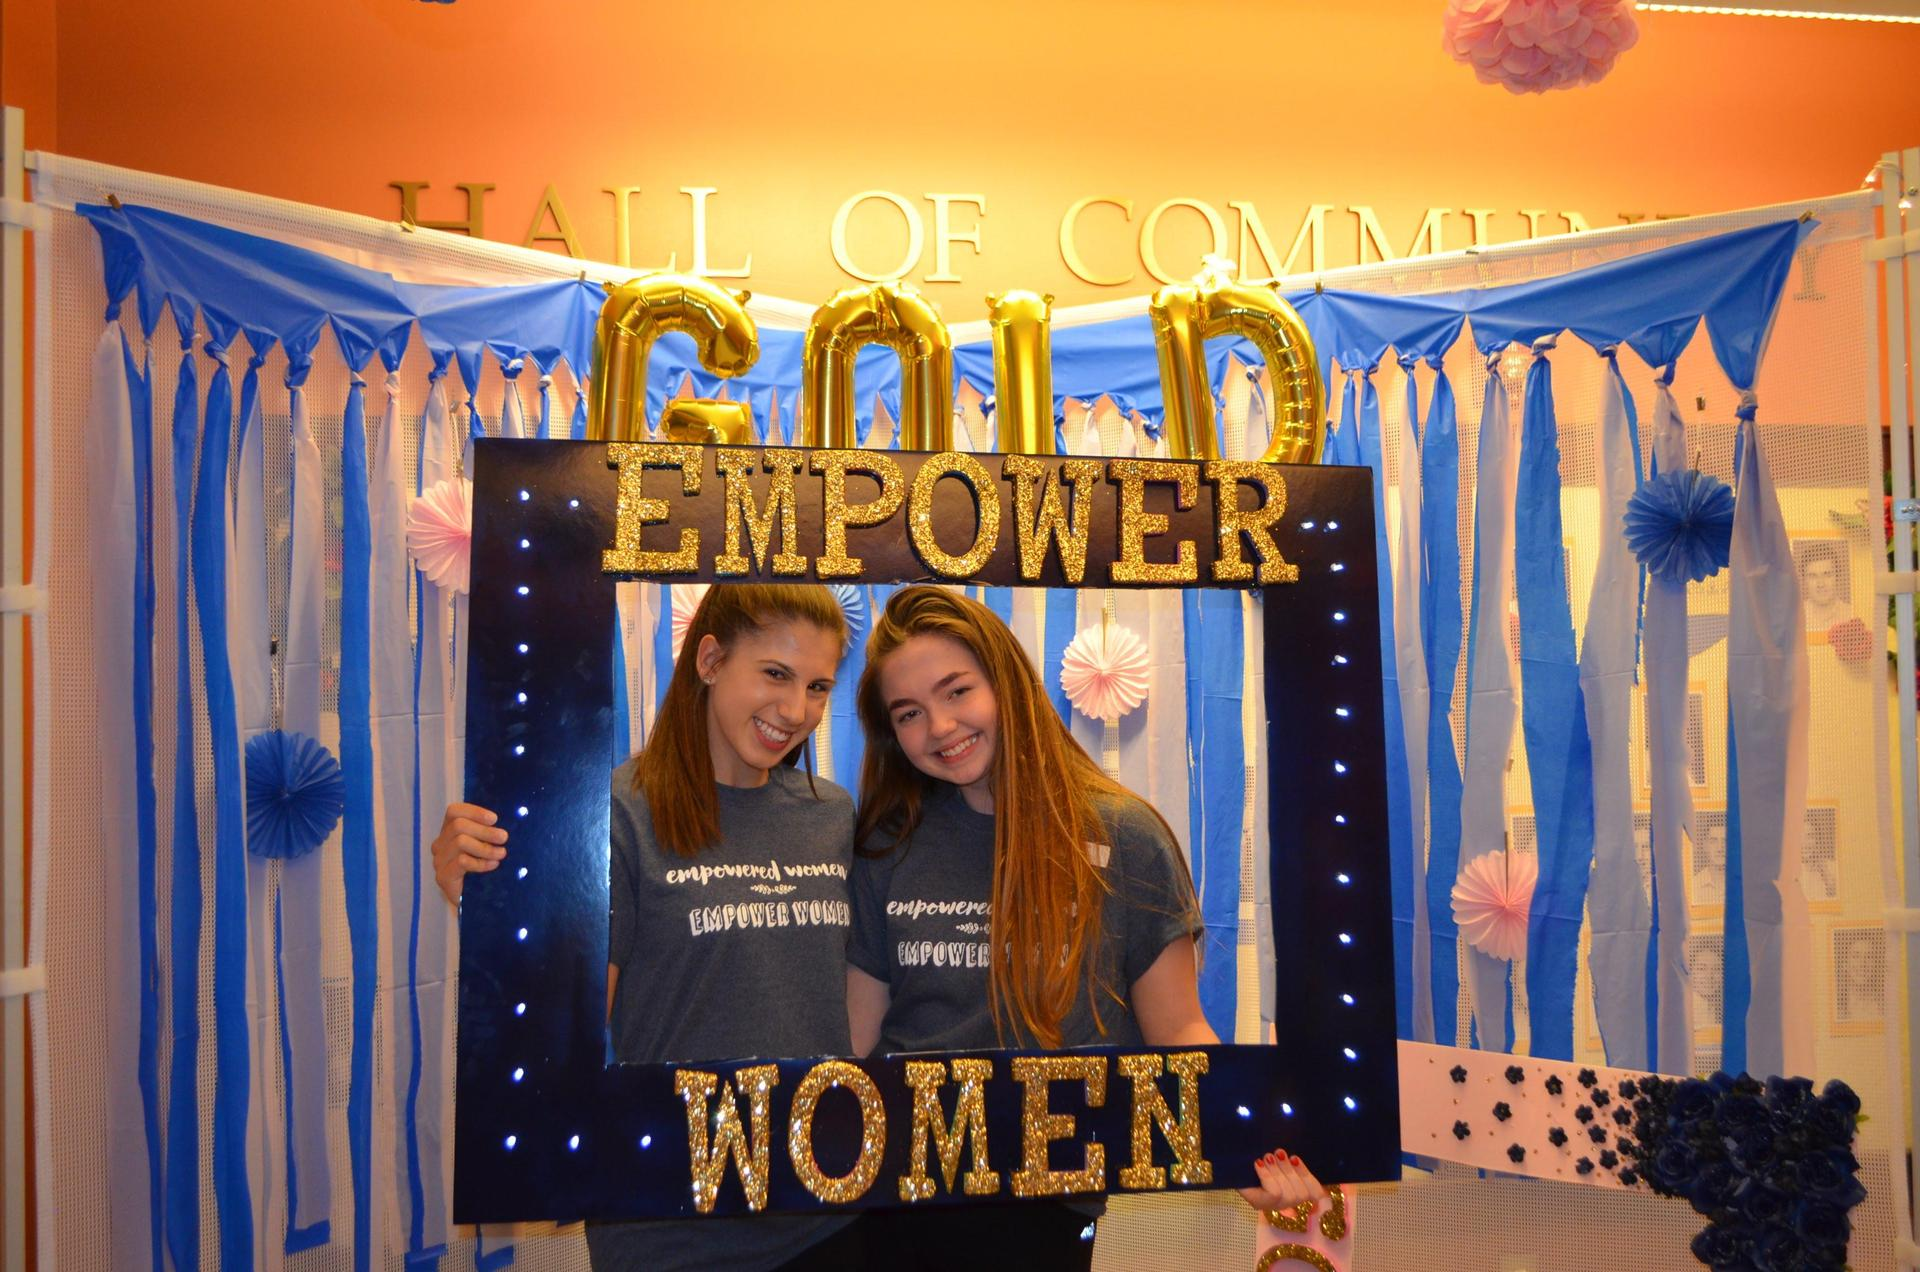 Francesca at last year's GOLD (Girls Overnight Leadership Development) event, posing with Anna.